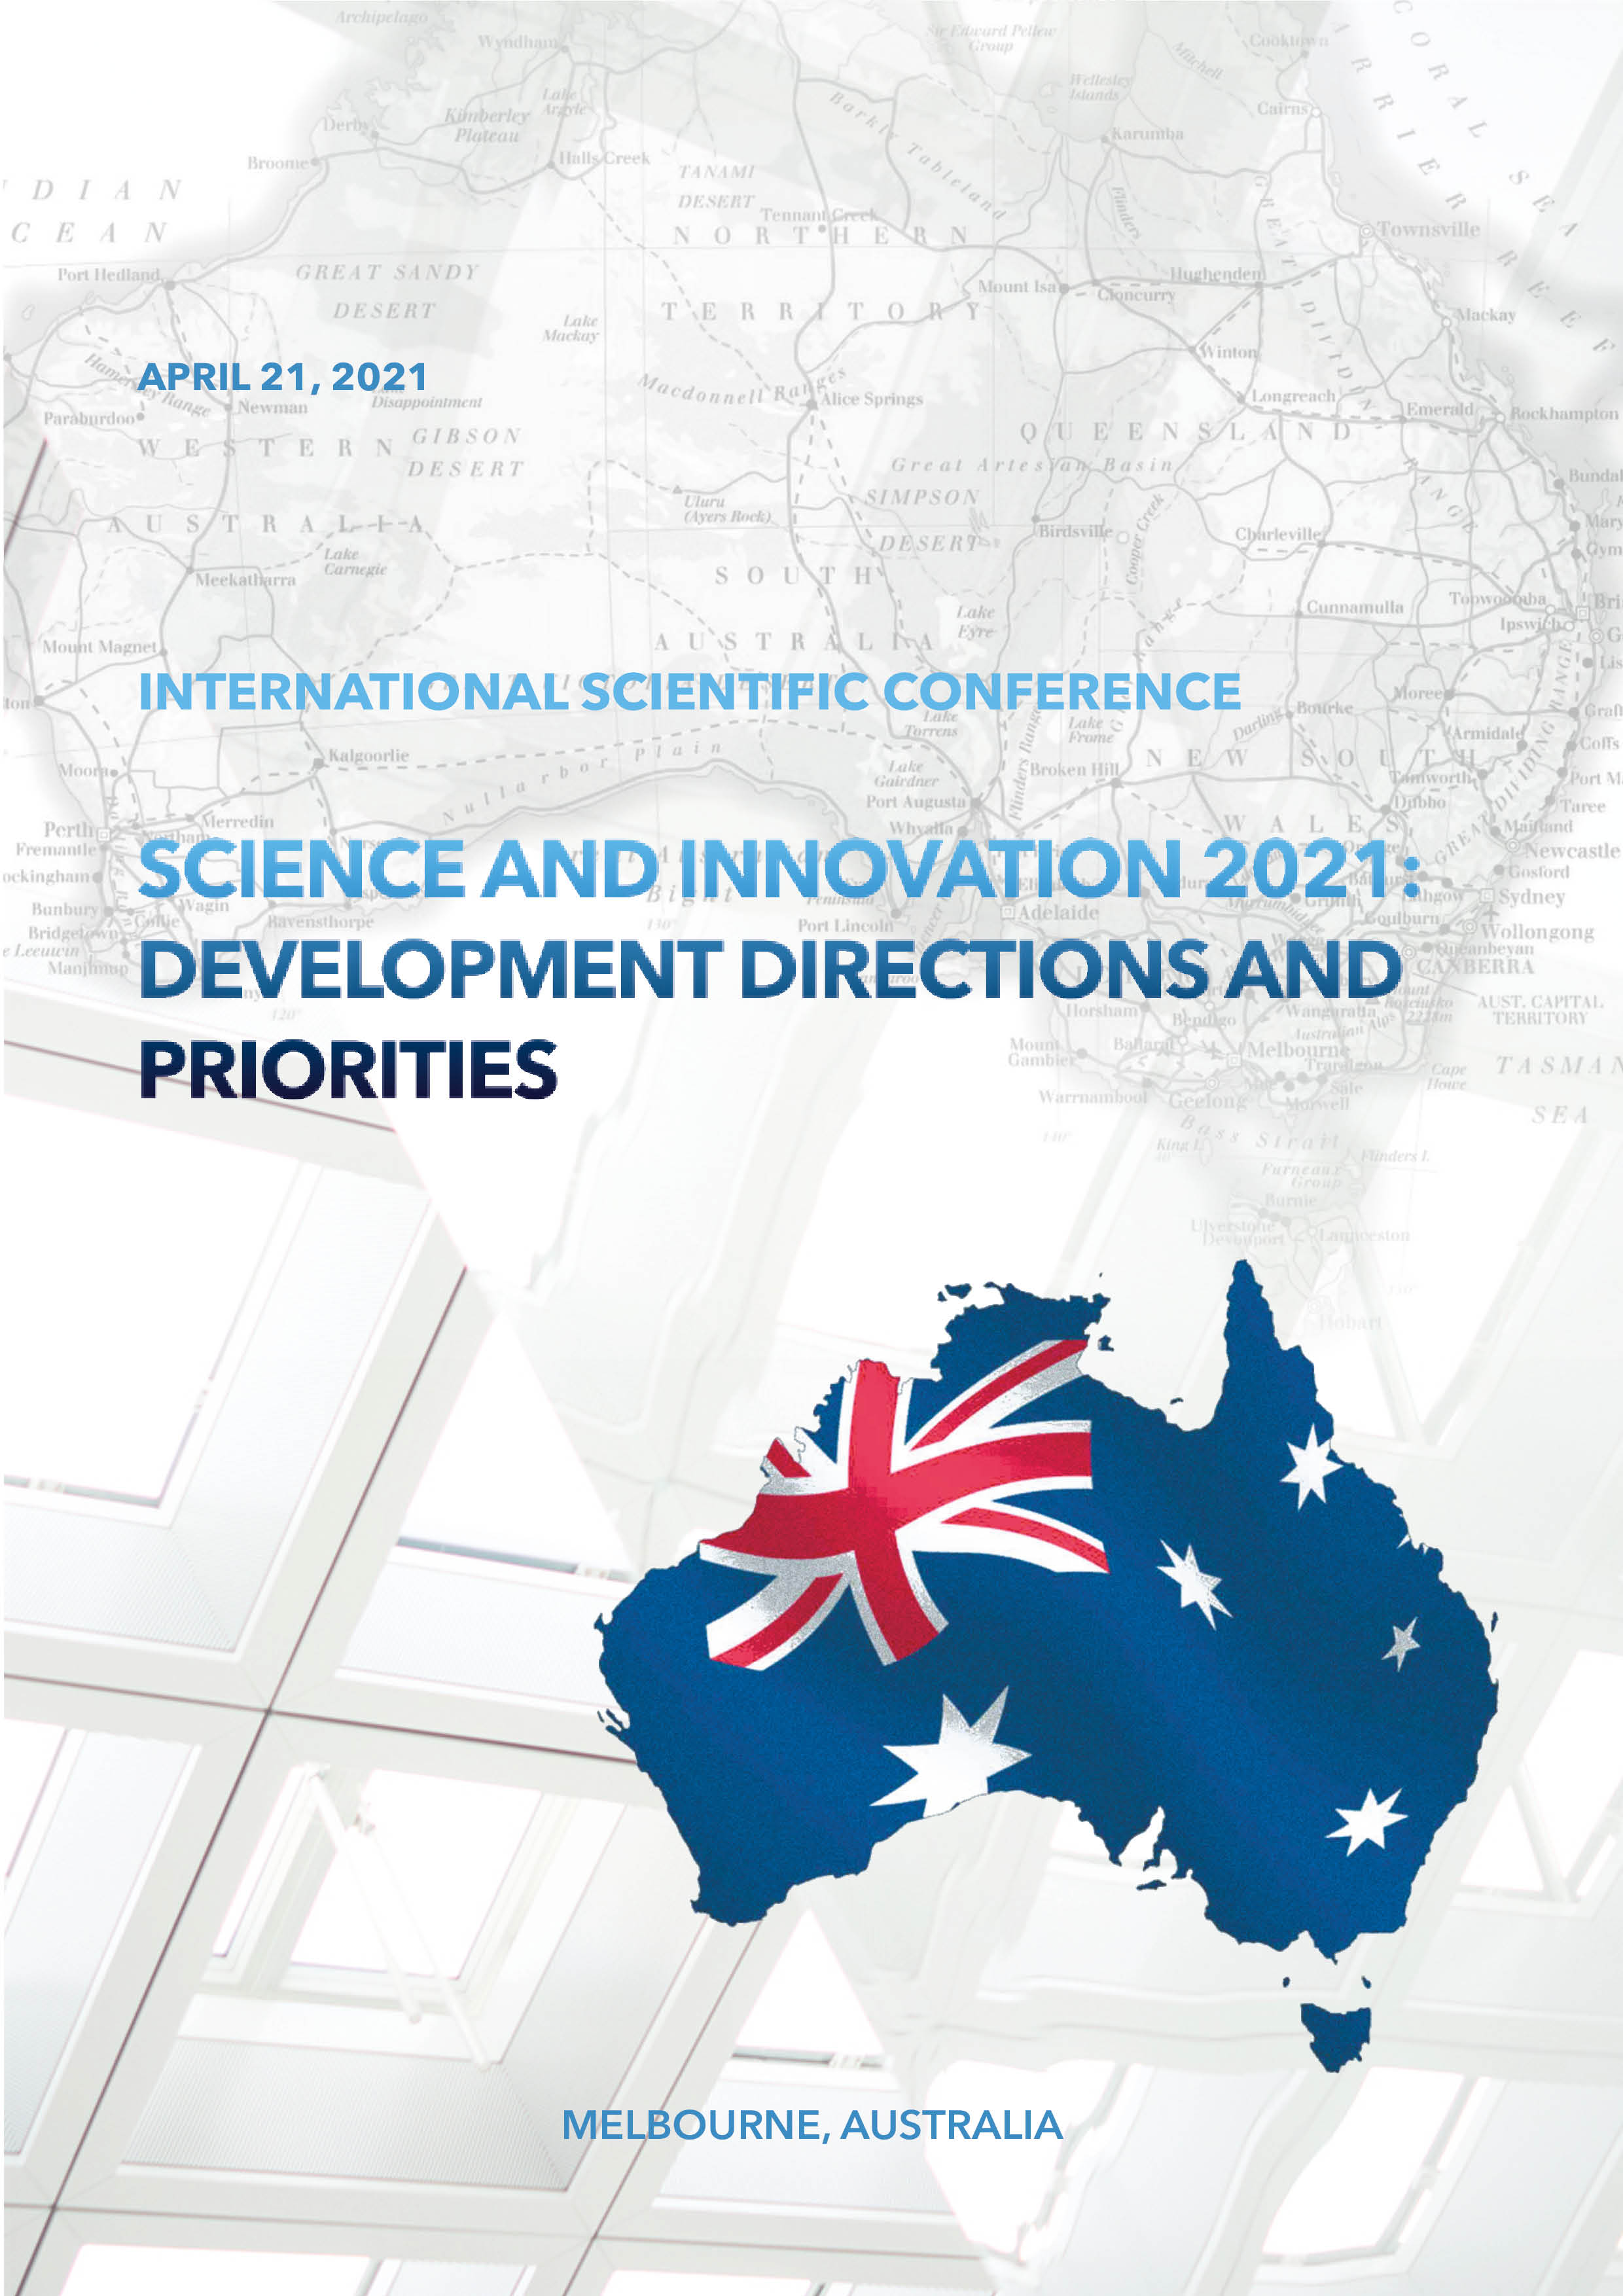 Science and innovations 2021: development directions and priorities. PART 1